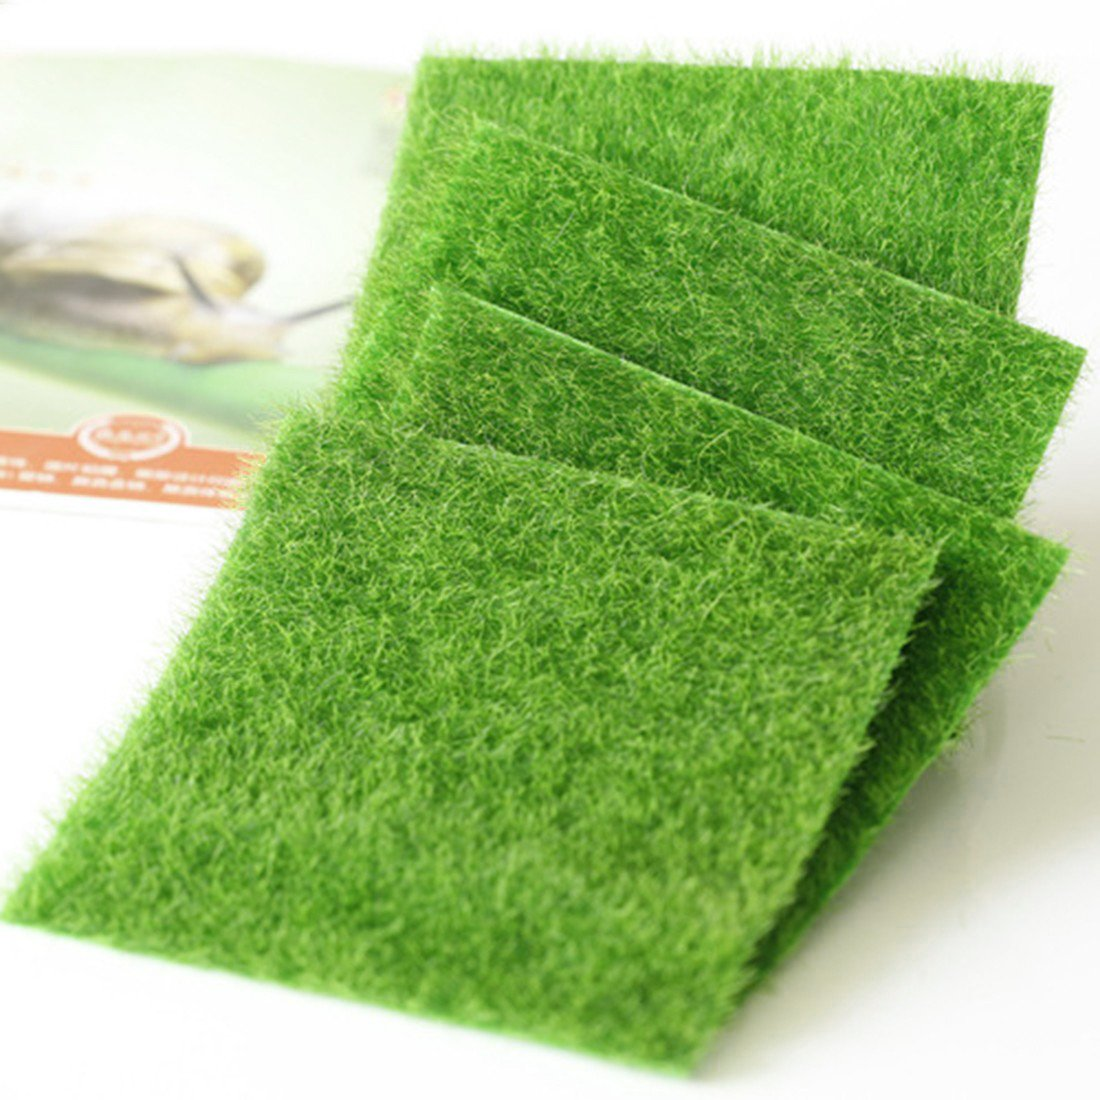 Artificial Grass Fake Lawn Fake Grass Miniature Dollhouse Home Garden D¨¦cor